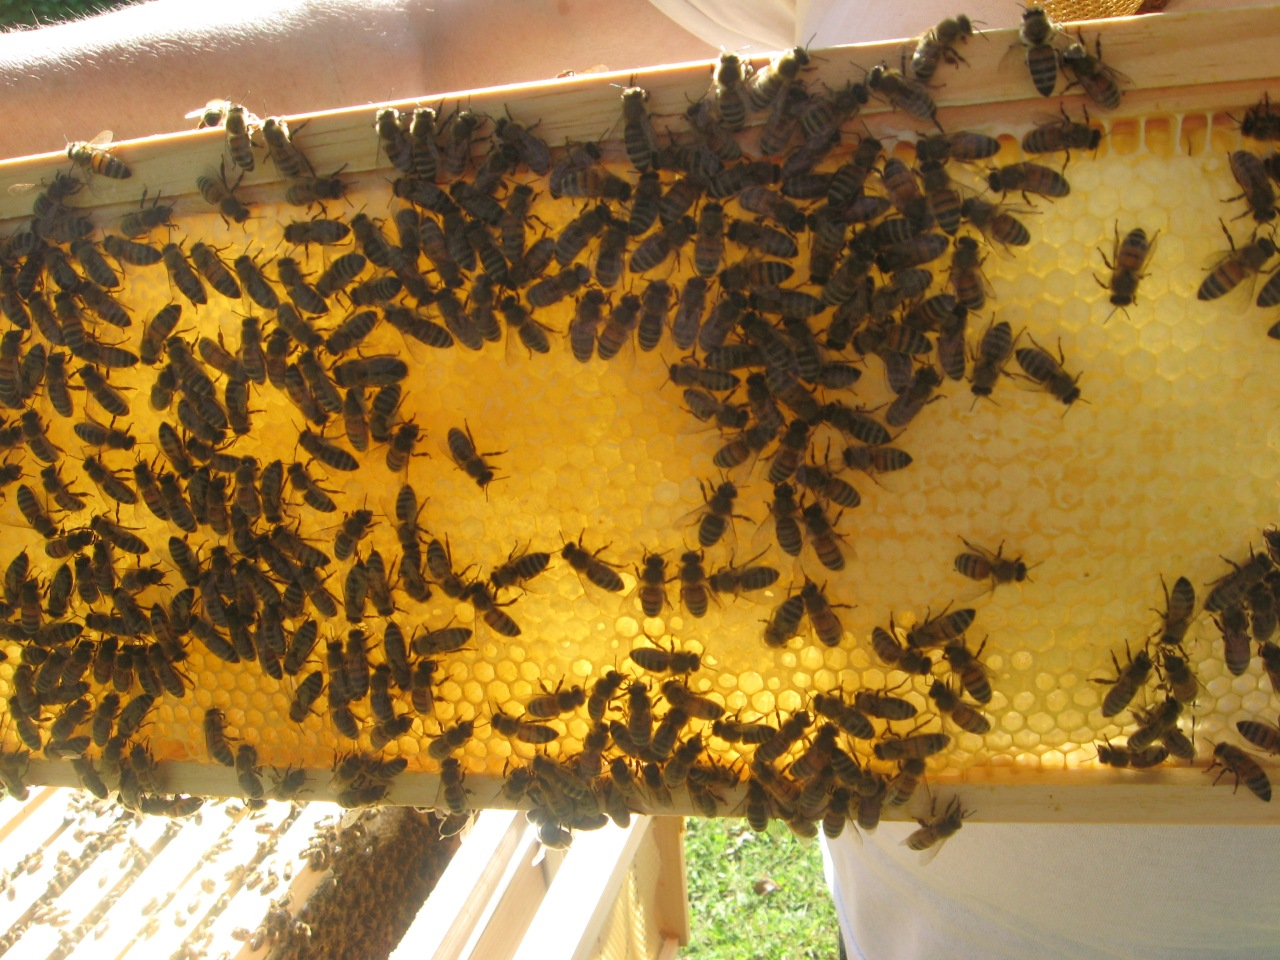 Langstroth fram with honey and bees